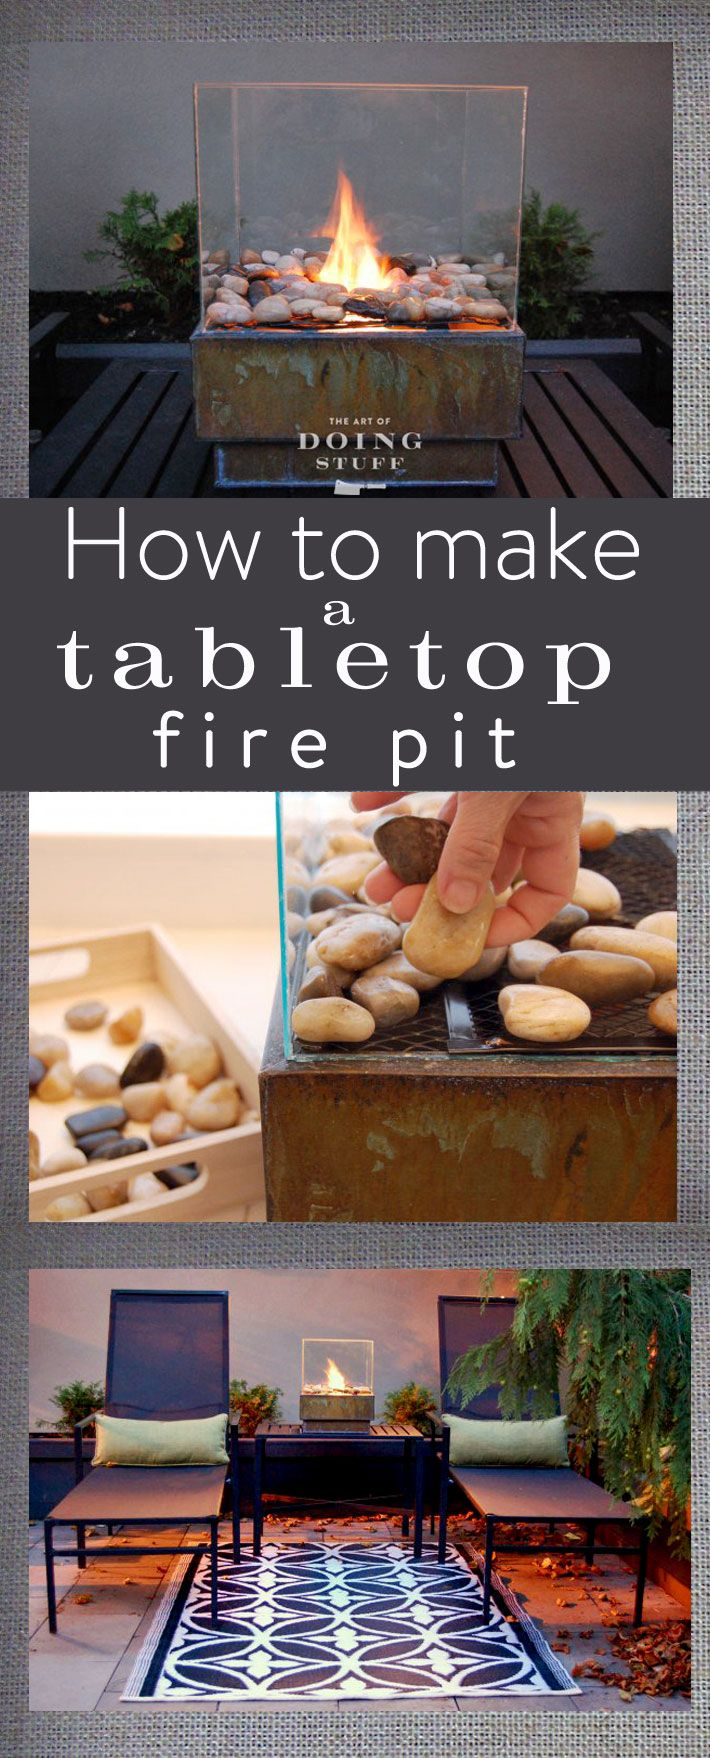 Backyard fire pits can be really expensive, plus they might not be the style you like. Using this DIY you can personalize & size it exactly how you want it.